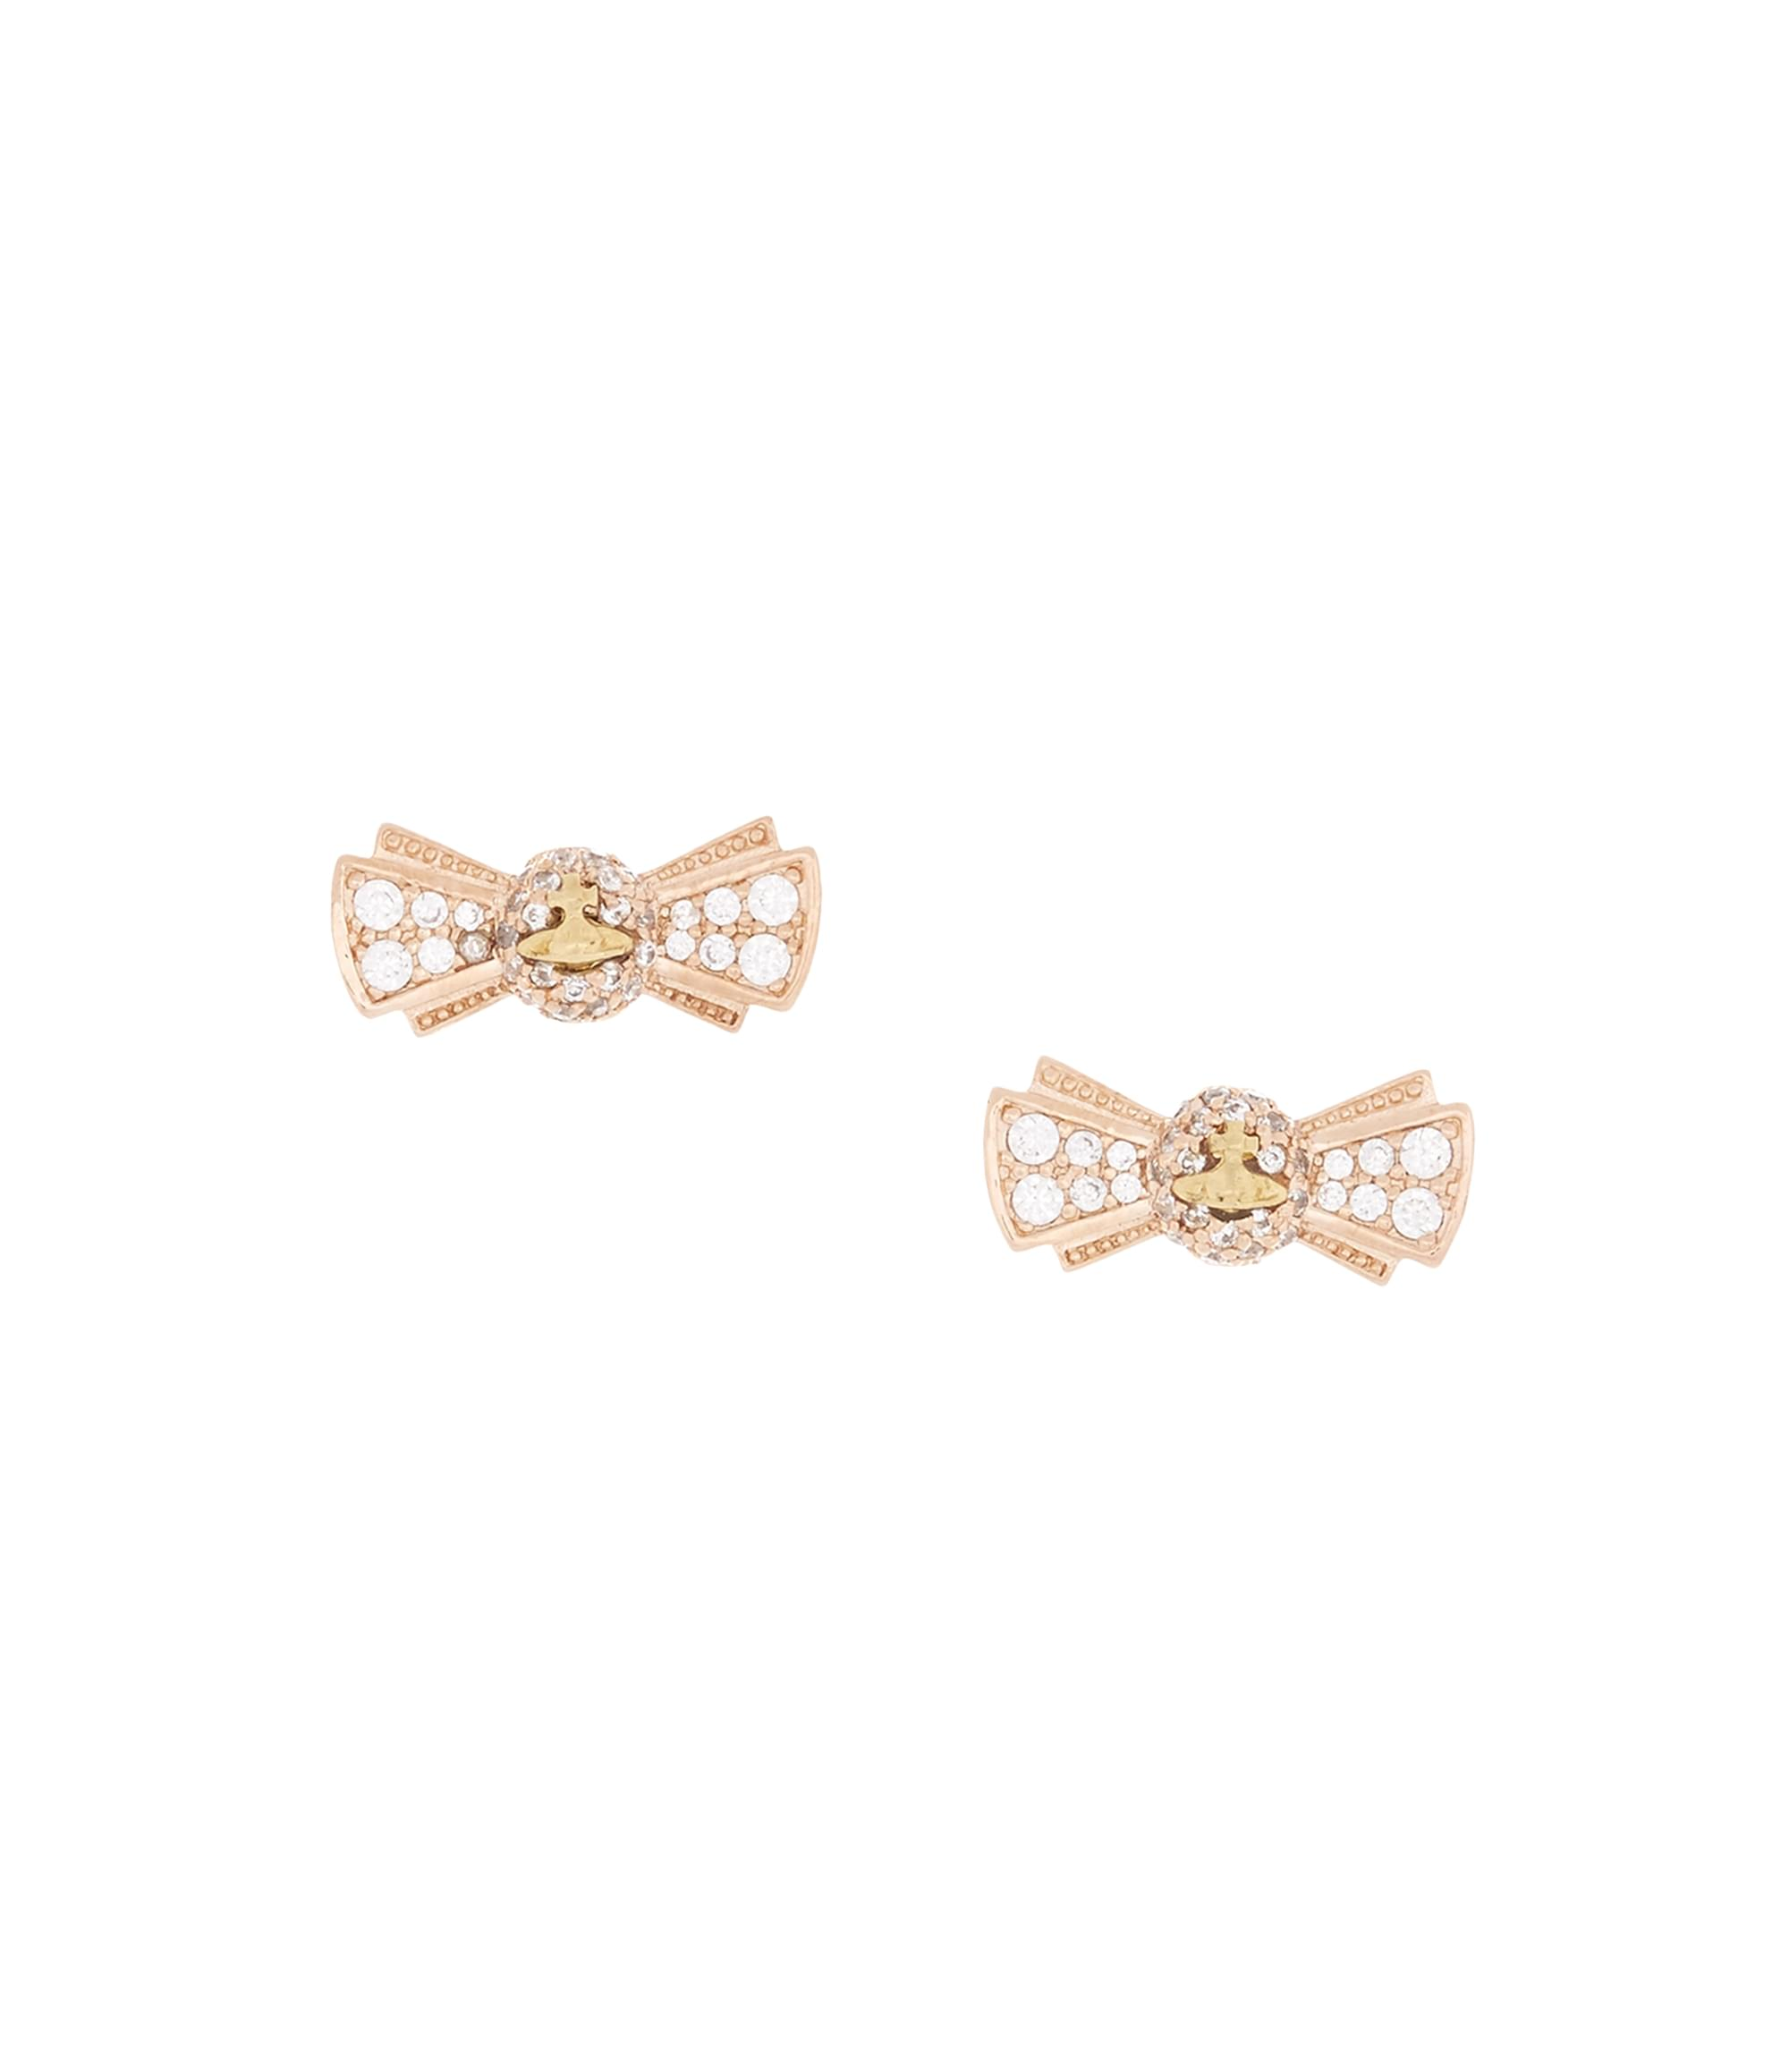 Vivienne Westwood Pamela Small Earrings Pink Gold